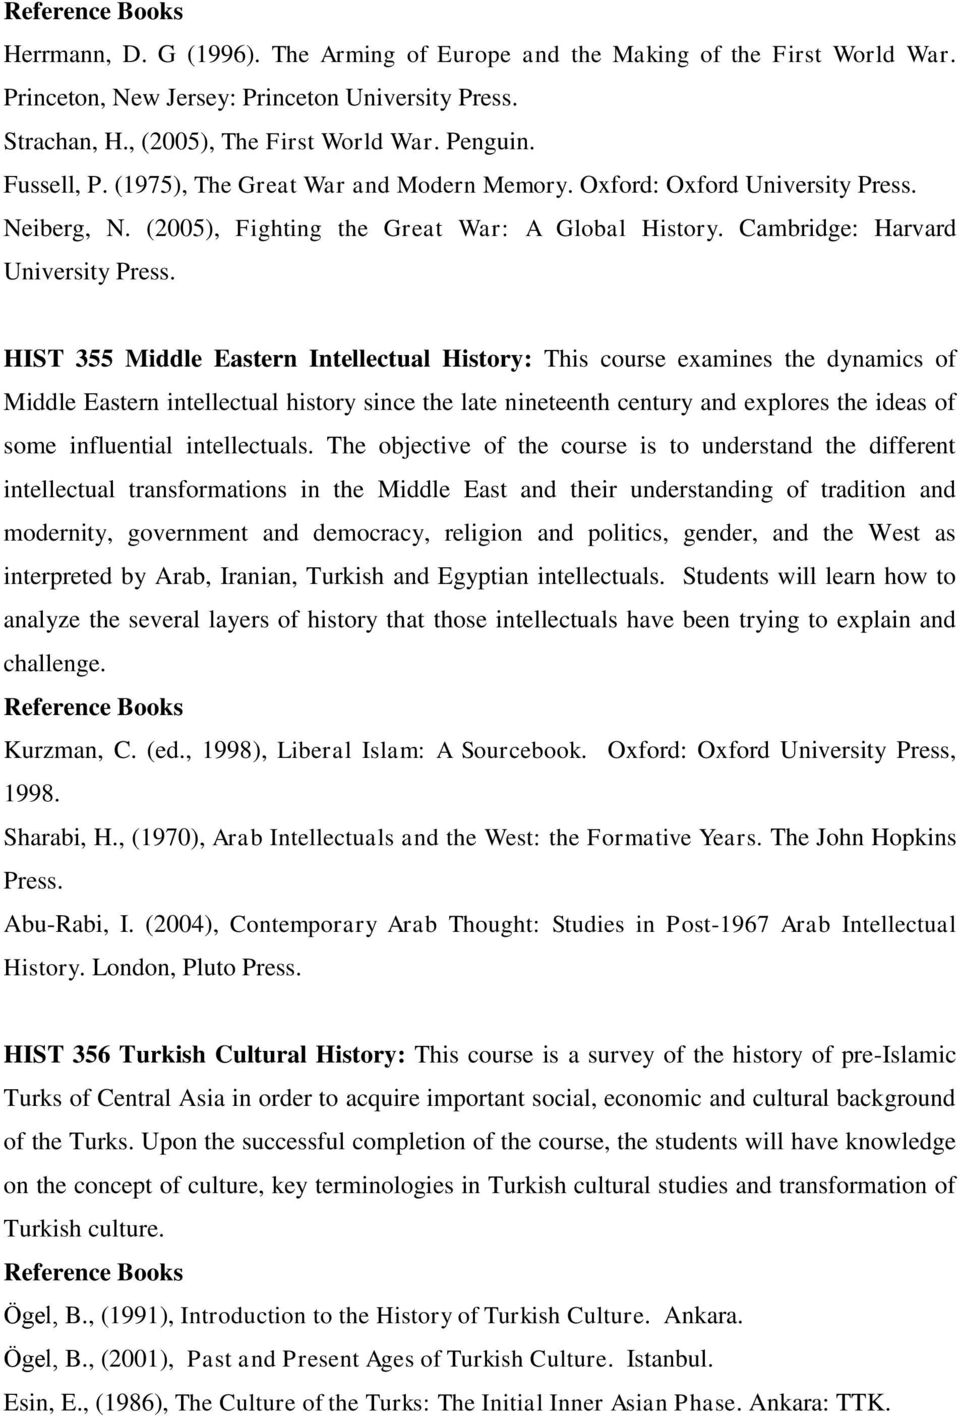 HIST 355 Middle Eastern Intellectual History: This course examines the dynamics of Middle Eastern intellectual history since the late nineteenth century and explores the ideas of some influential